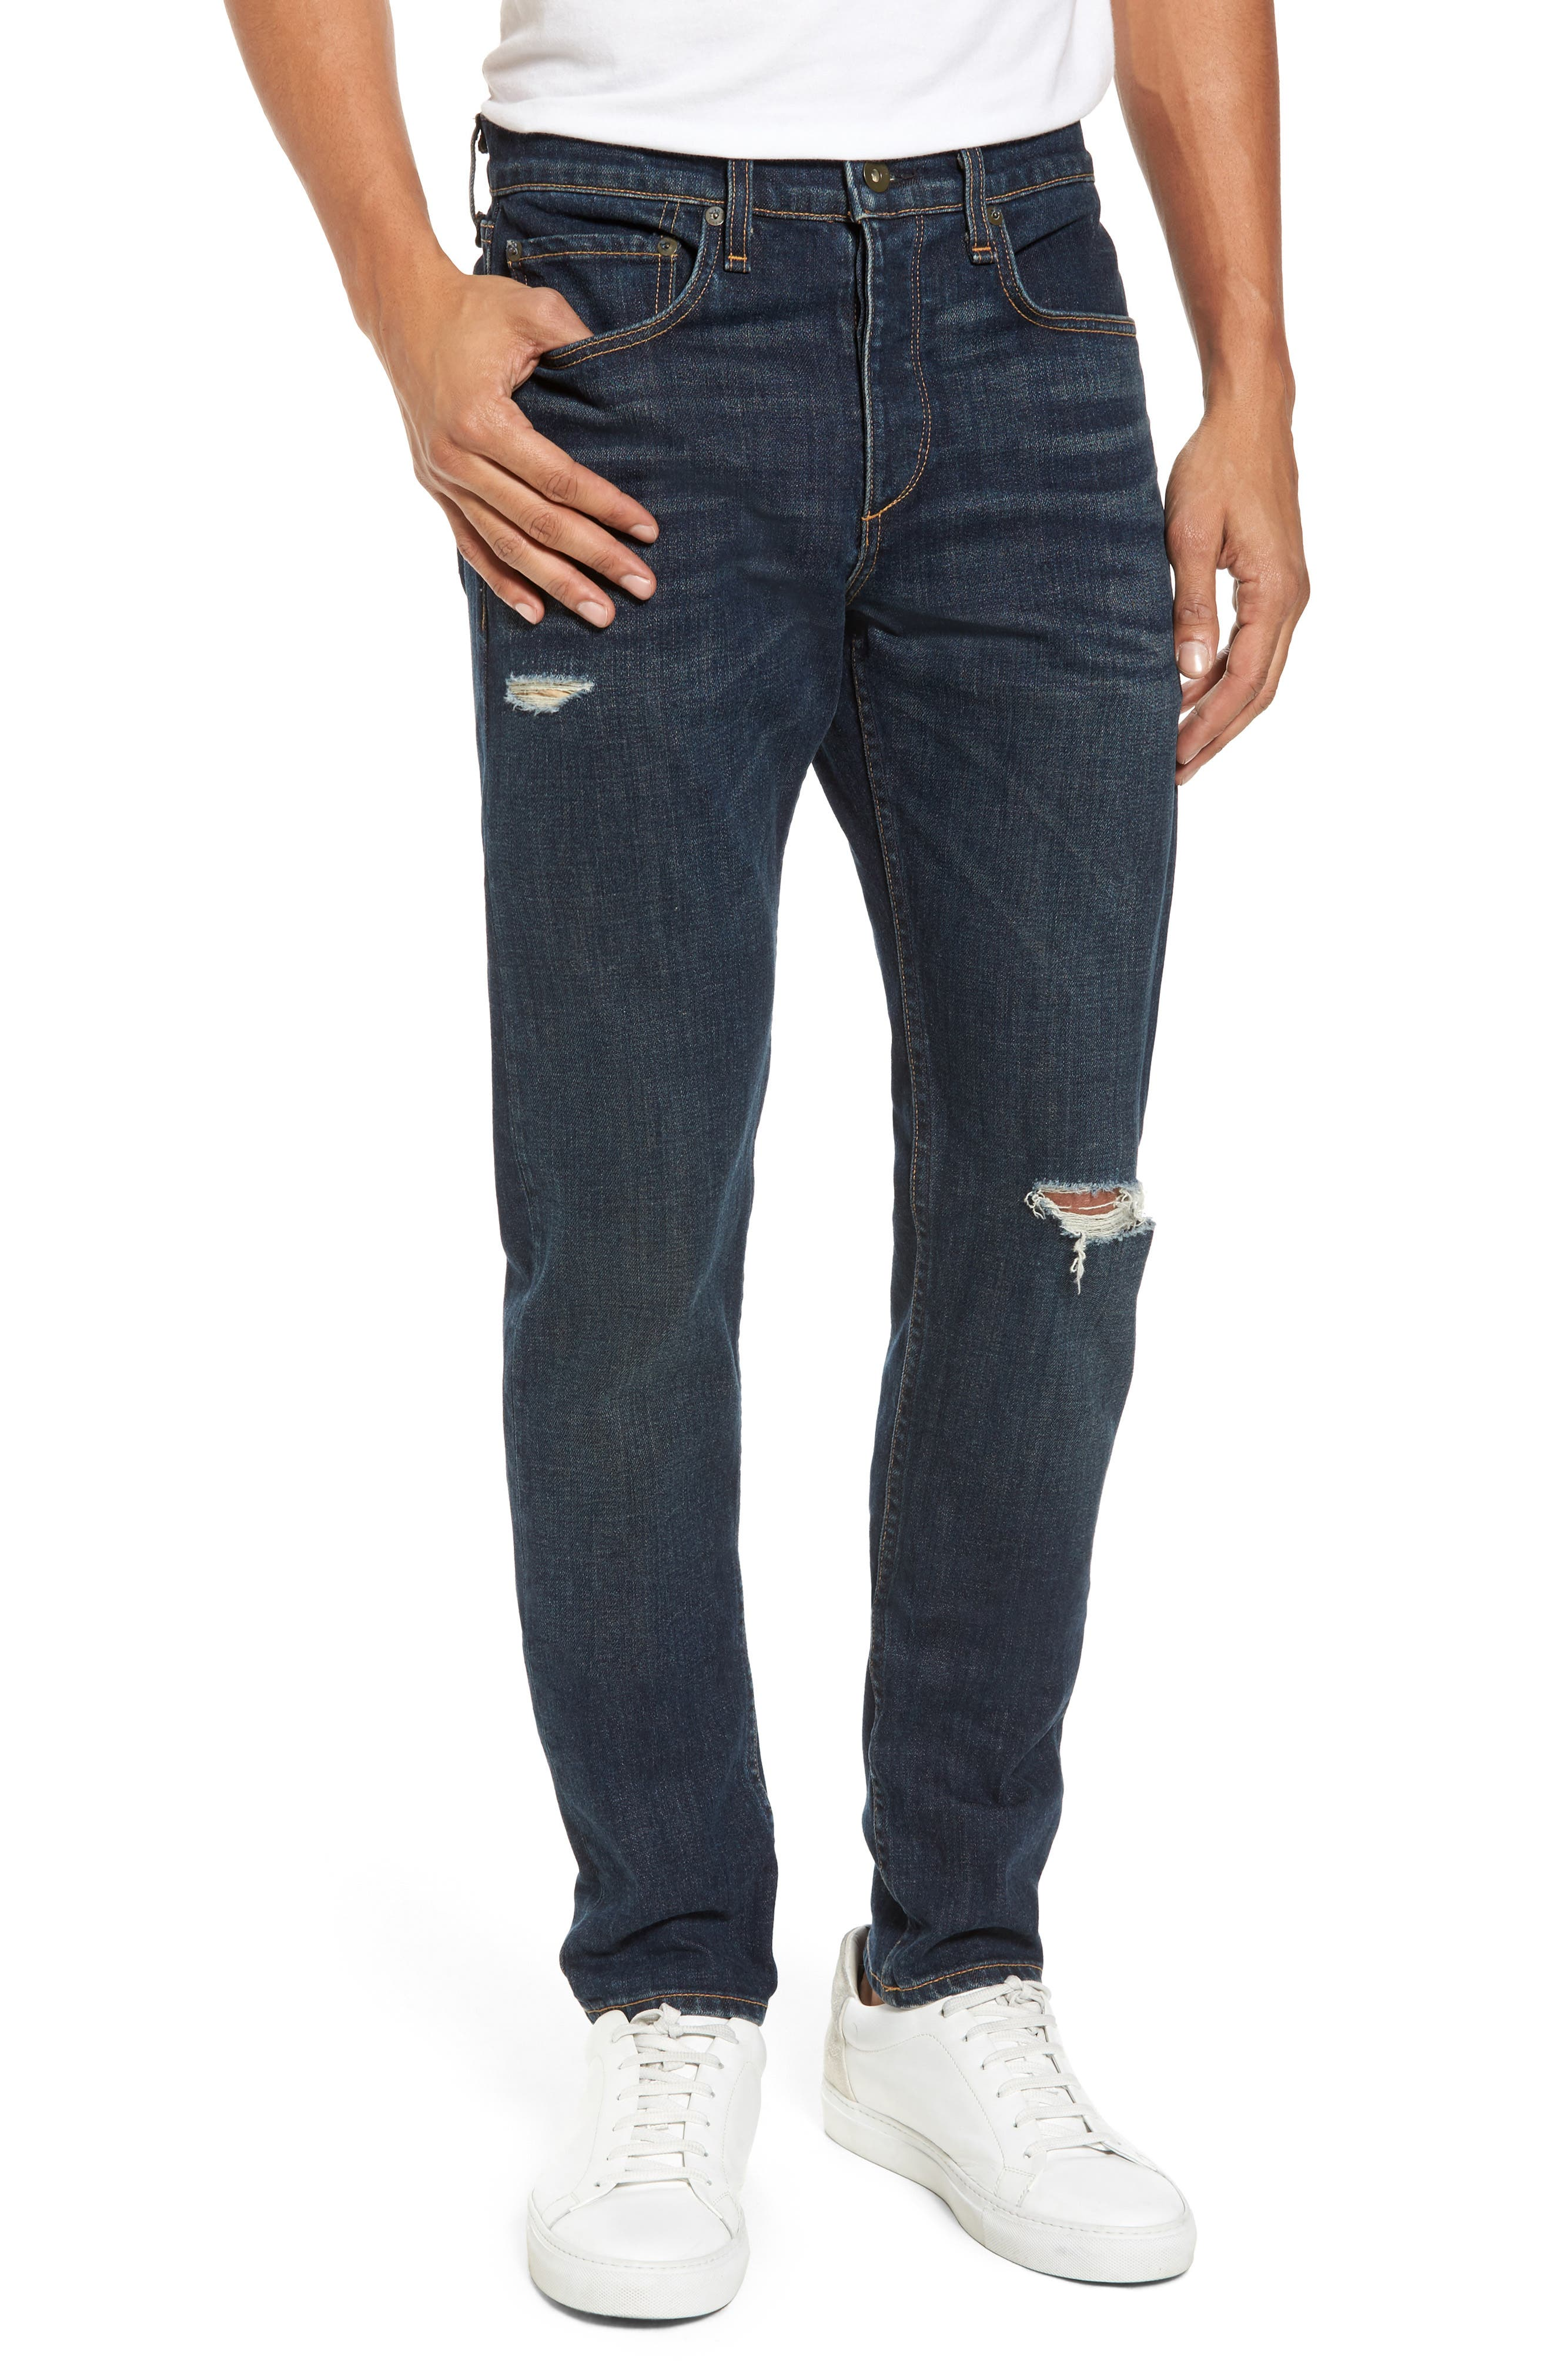 Fit 1 Skinny Fit Jeans,                         Main,                         color, 407